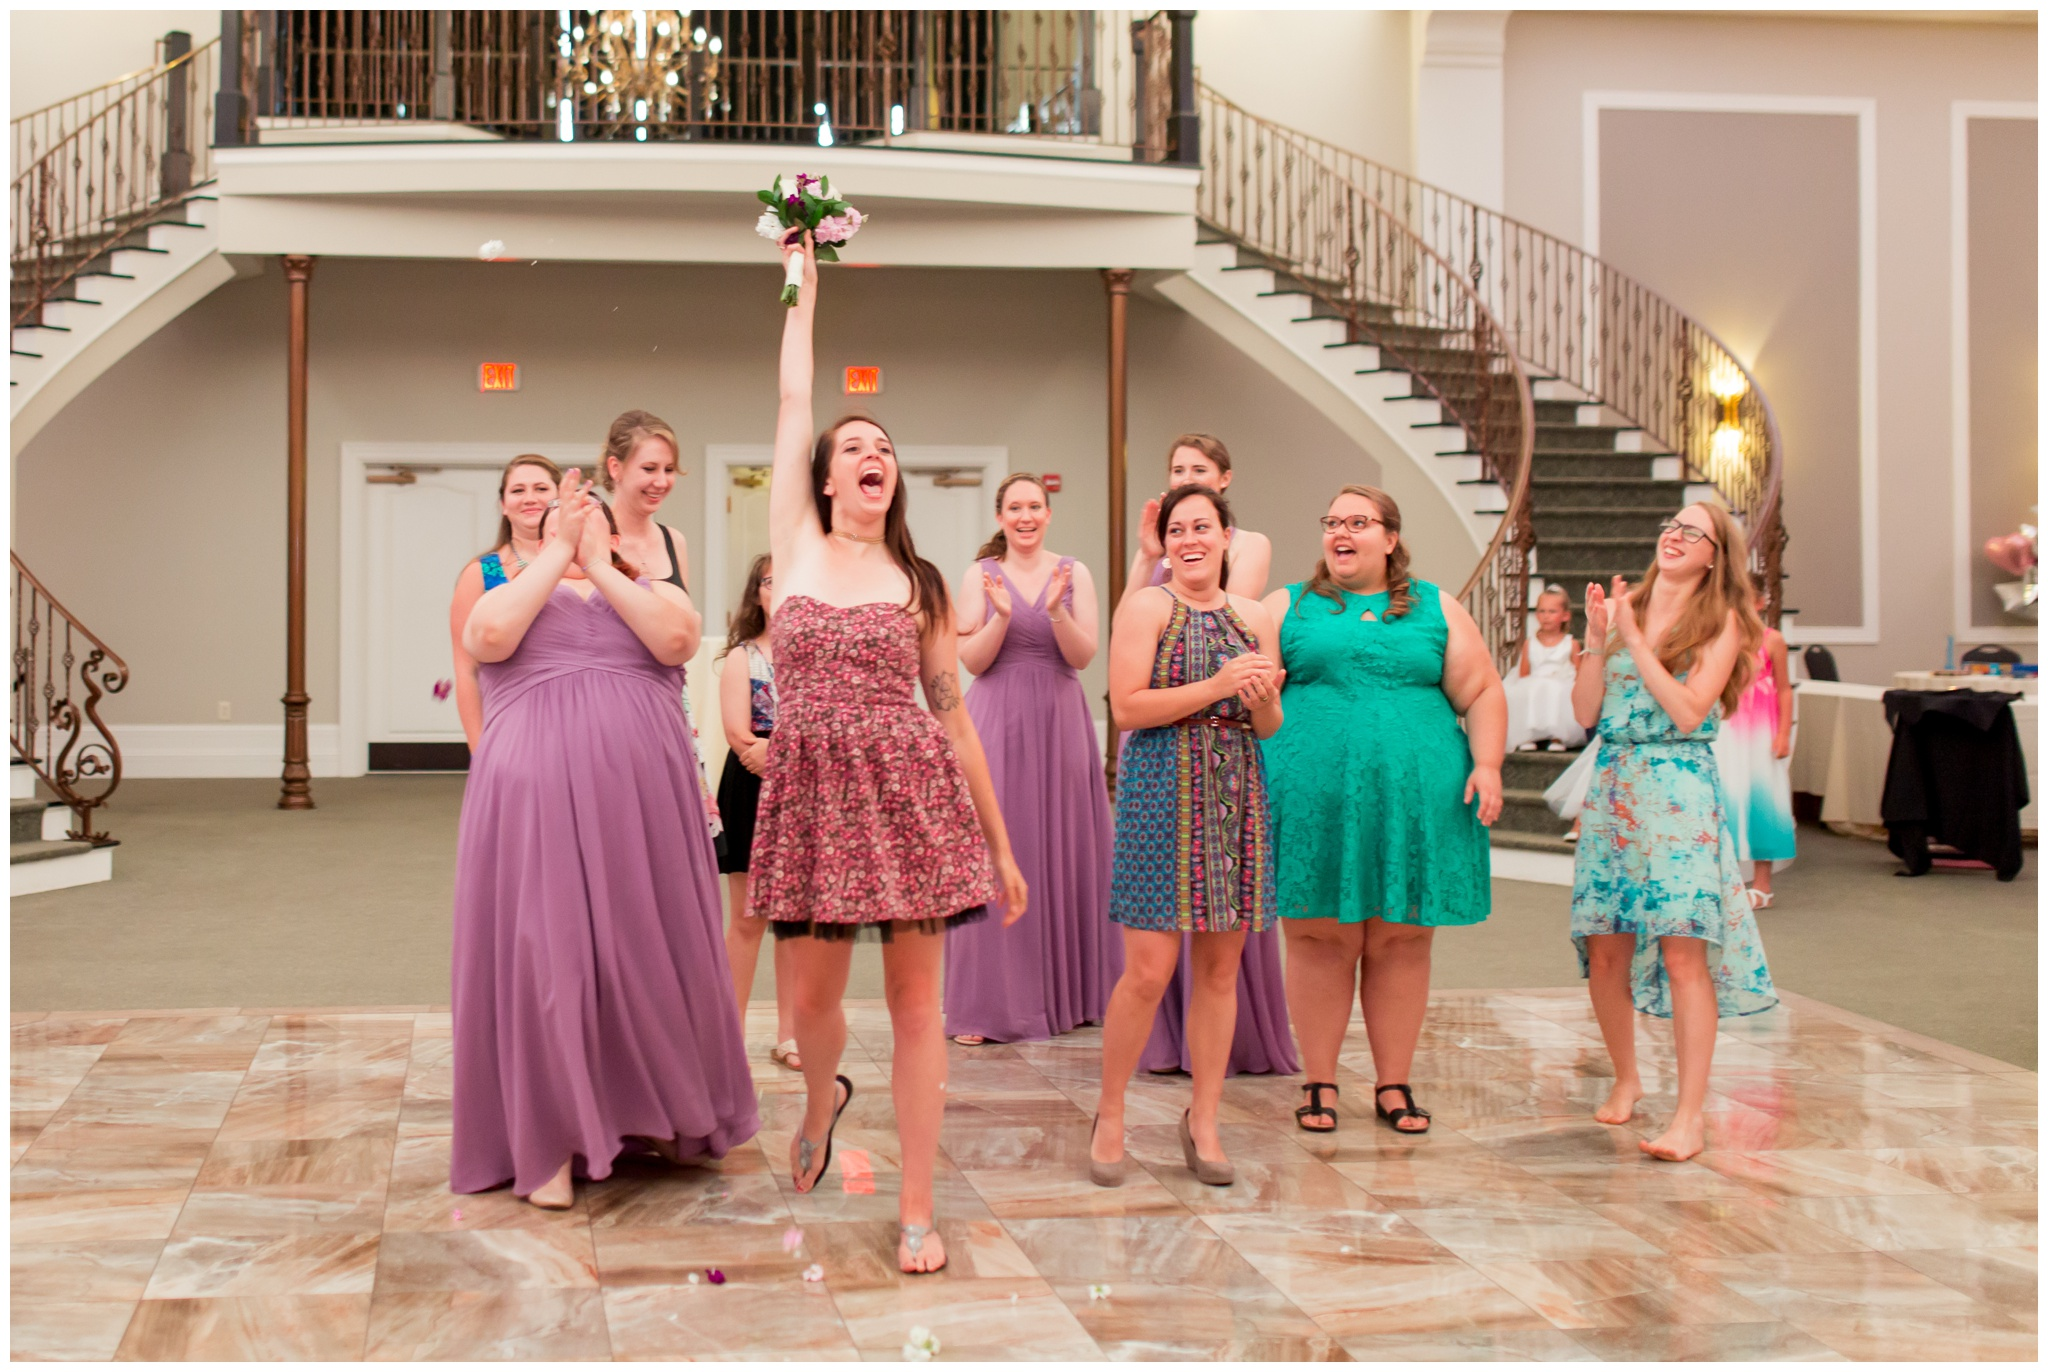 guest catches bouquet toss during wedding reception at Bel Air Events in Kokomo Indiana